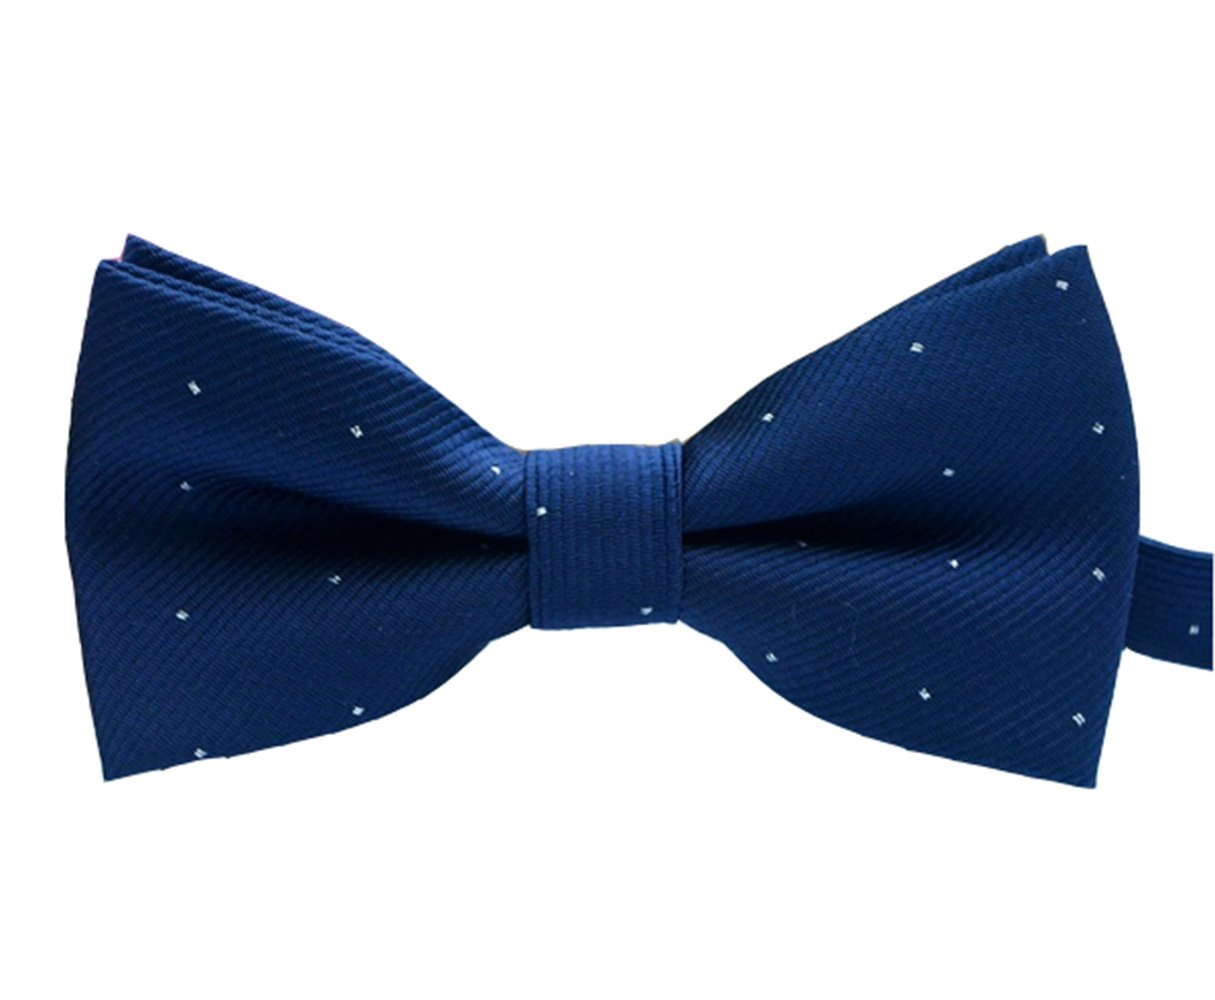 Boys Adjustable Pre-Tied Bow Tie With Beautiful Spot Pattern For Boys Kids (navy blue)